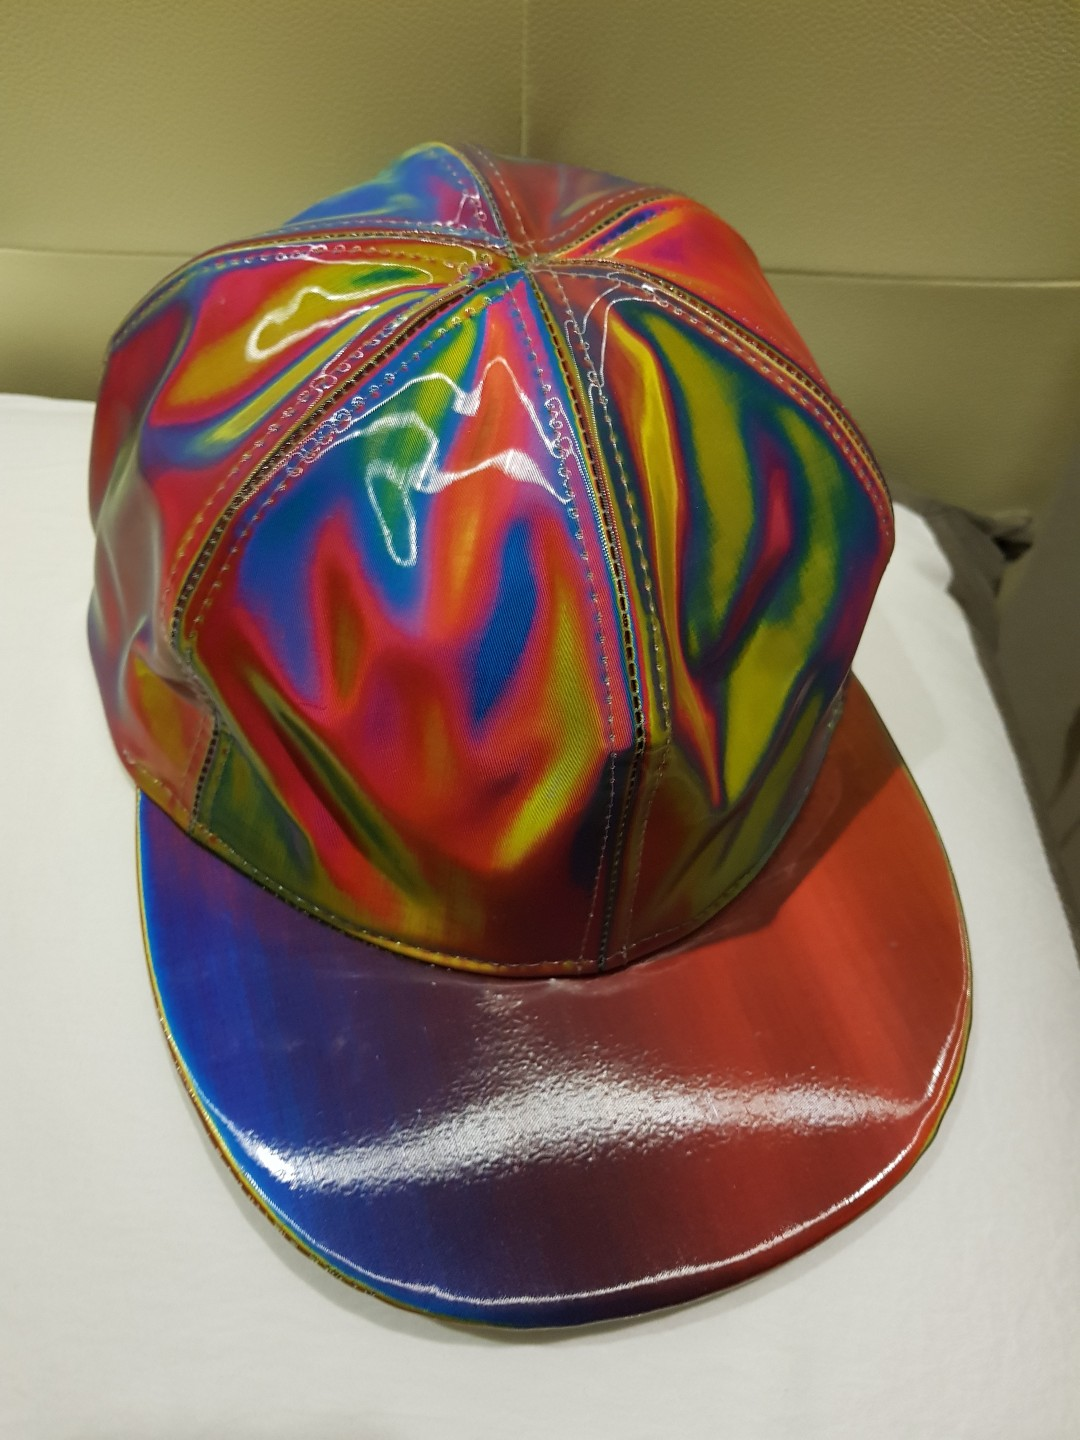 b5b64661a80 BNWOT Back to the Future II  Marty Mcfly Holographic Cap (Movie ...